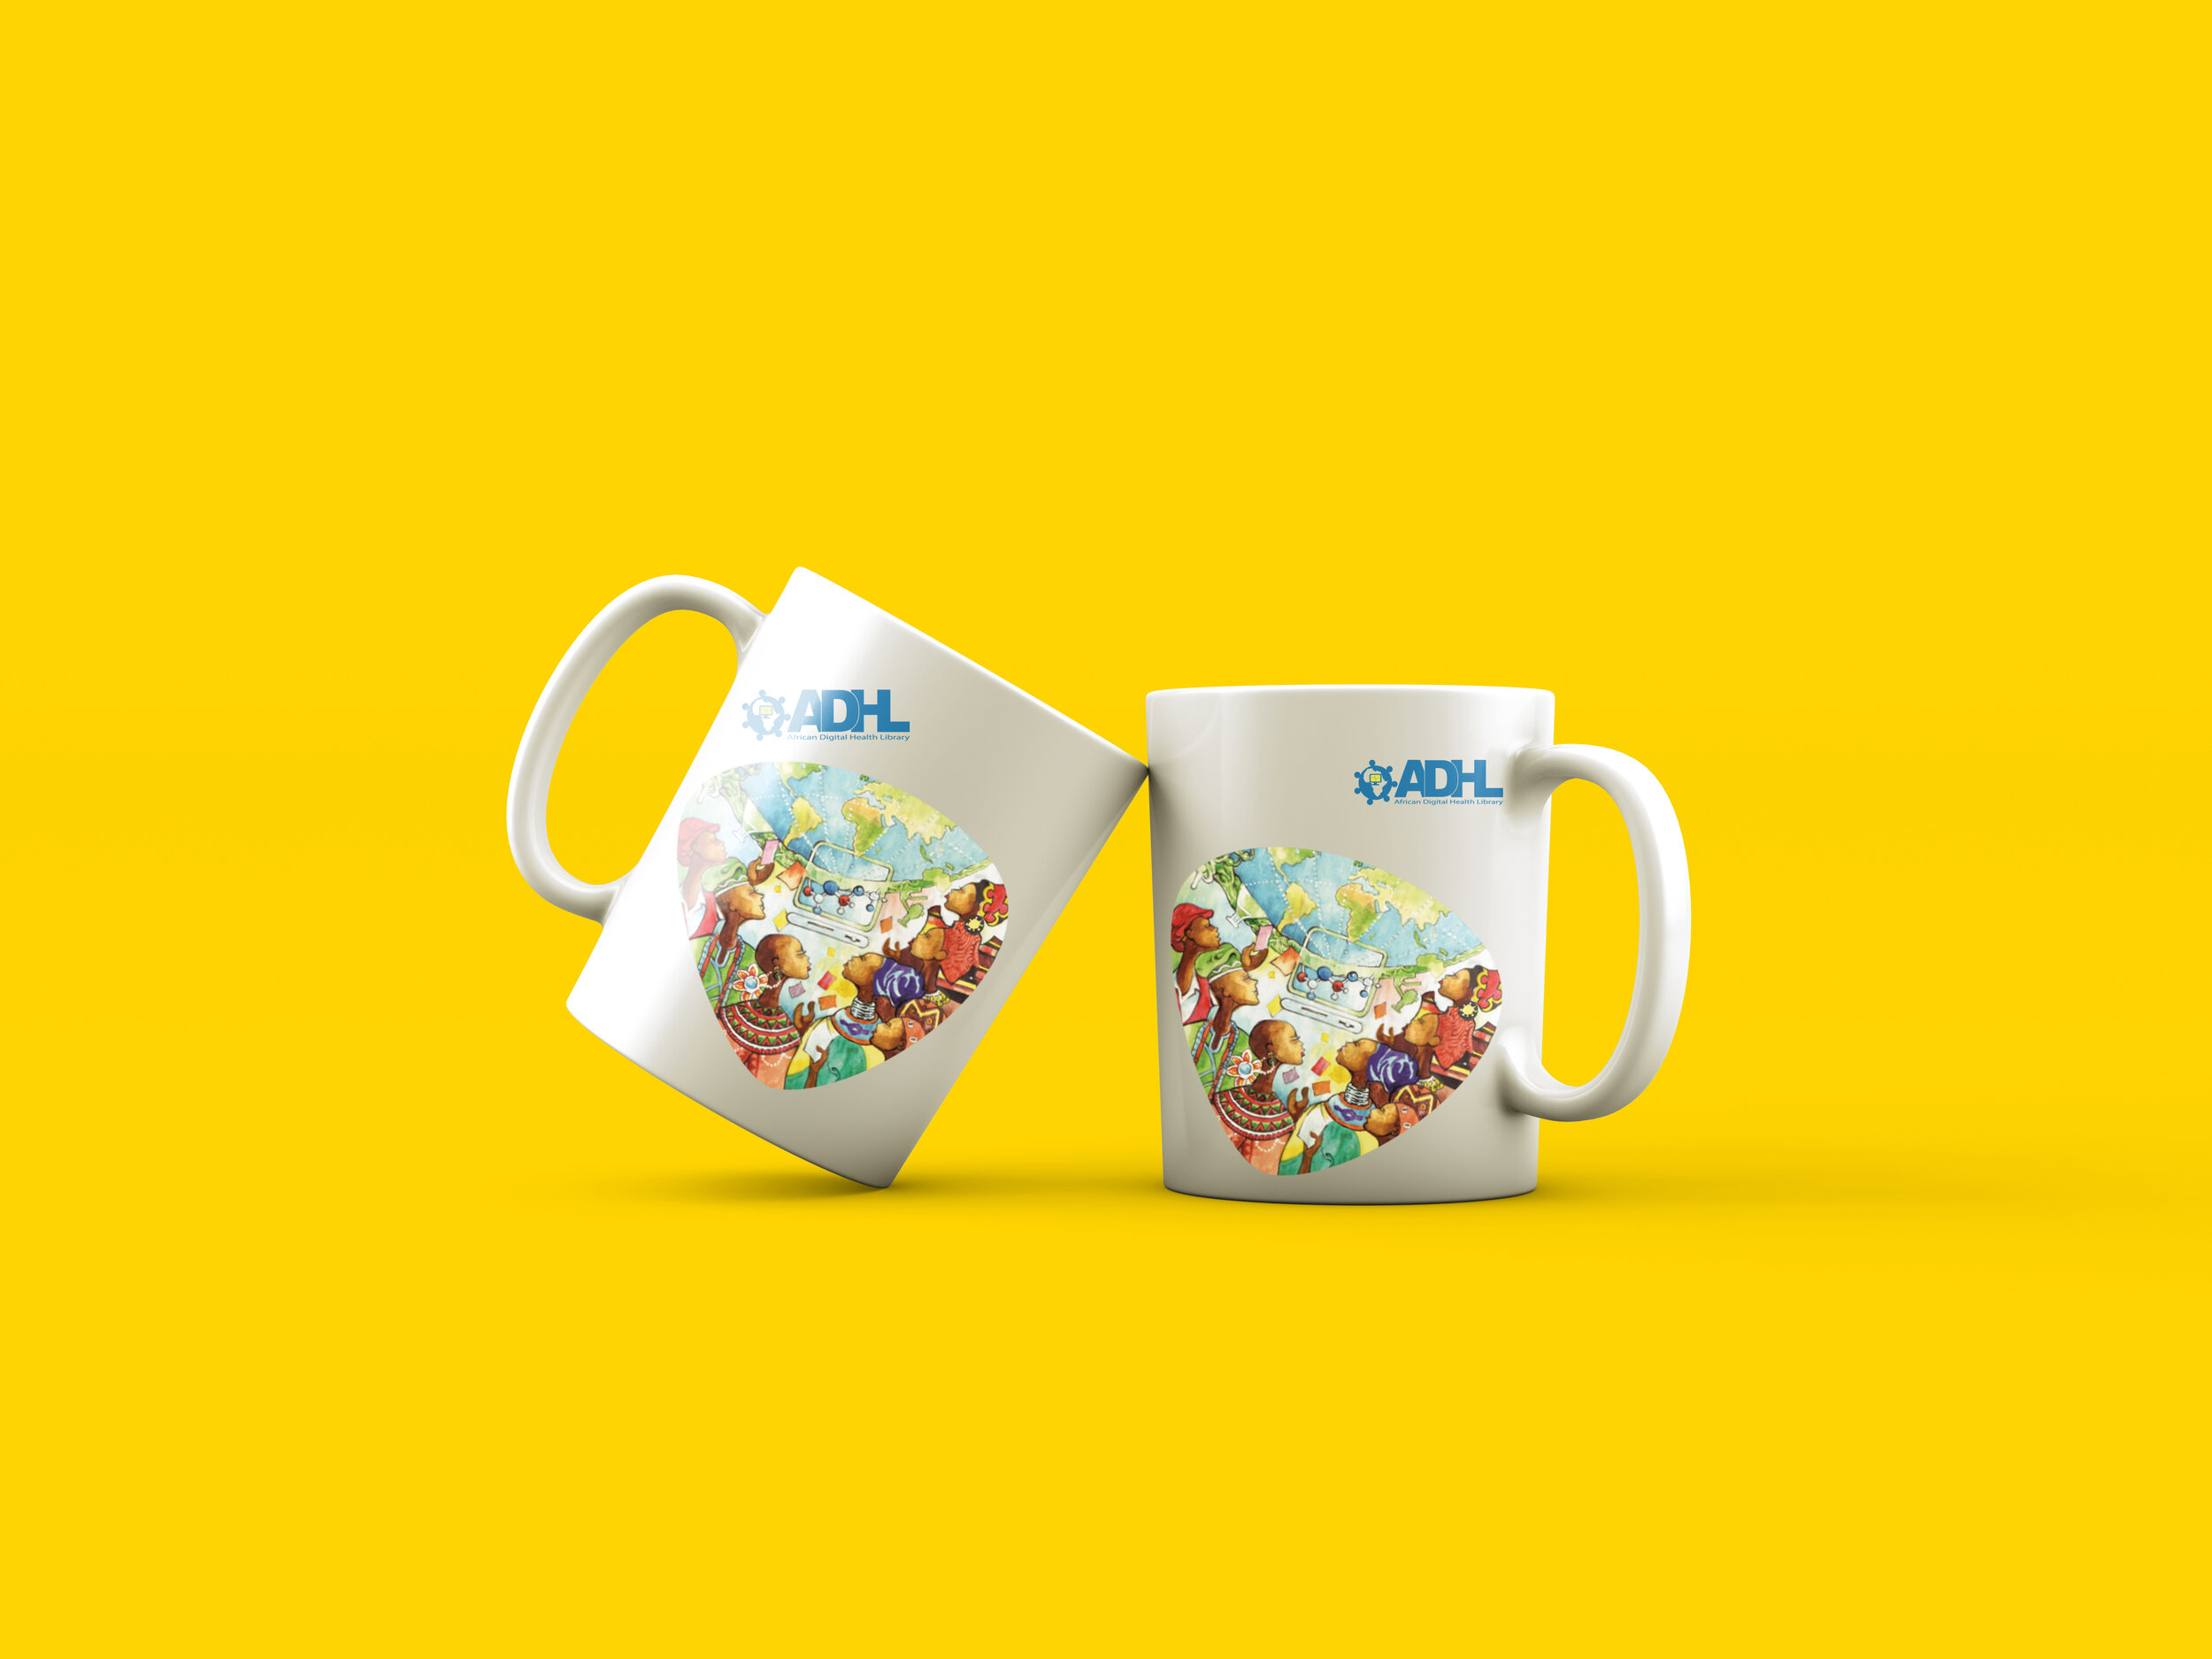 Click to artwork download and print your own Mug (2.9MB)